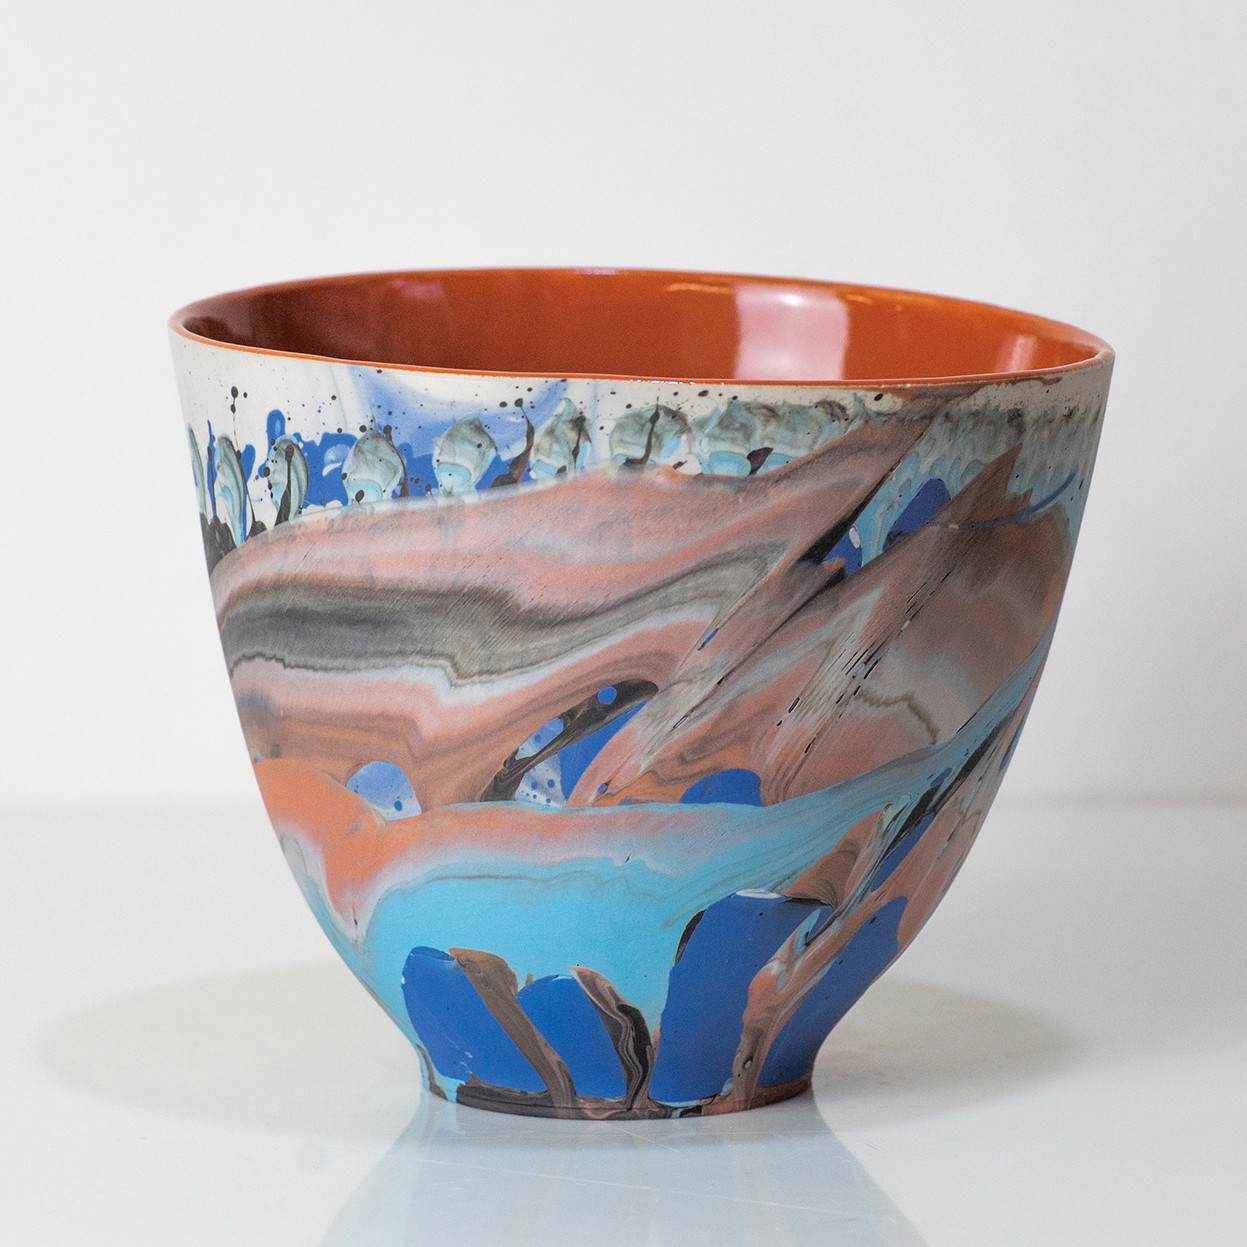 <span class=&#34;link fancybox-details-link&#34;><a href=&#34;/artists/219-james-pegg/works/6074-james-pegg-bowl-2019/&#34;>View Detail Page</a></span><div class=&#34;artist&#34;><strong>James Pegg</strong></div> <div class=&#34;title&#34;><em>Bowl</em>, 2019</div> <div class=&#34;medium&#34;>action-cast stained porcelain with glazed interior</div> <div class=&#34;dimensions&#34;>h 13 cm<br /> 5 1/4 in</div><div class=&#34;price&#34;>£145.00</div><div class=&#34;copyright_line&#34;>OwnArt: £ 14.50 x 10 Months, 0% APR </div>